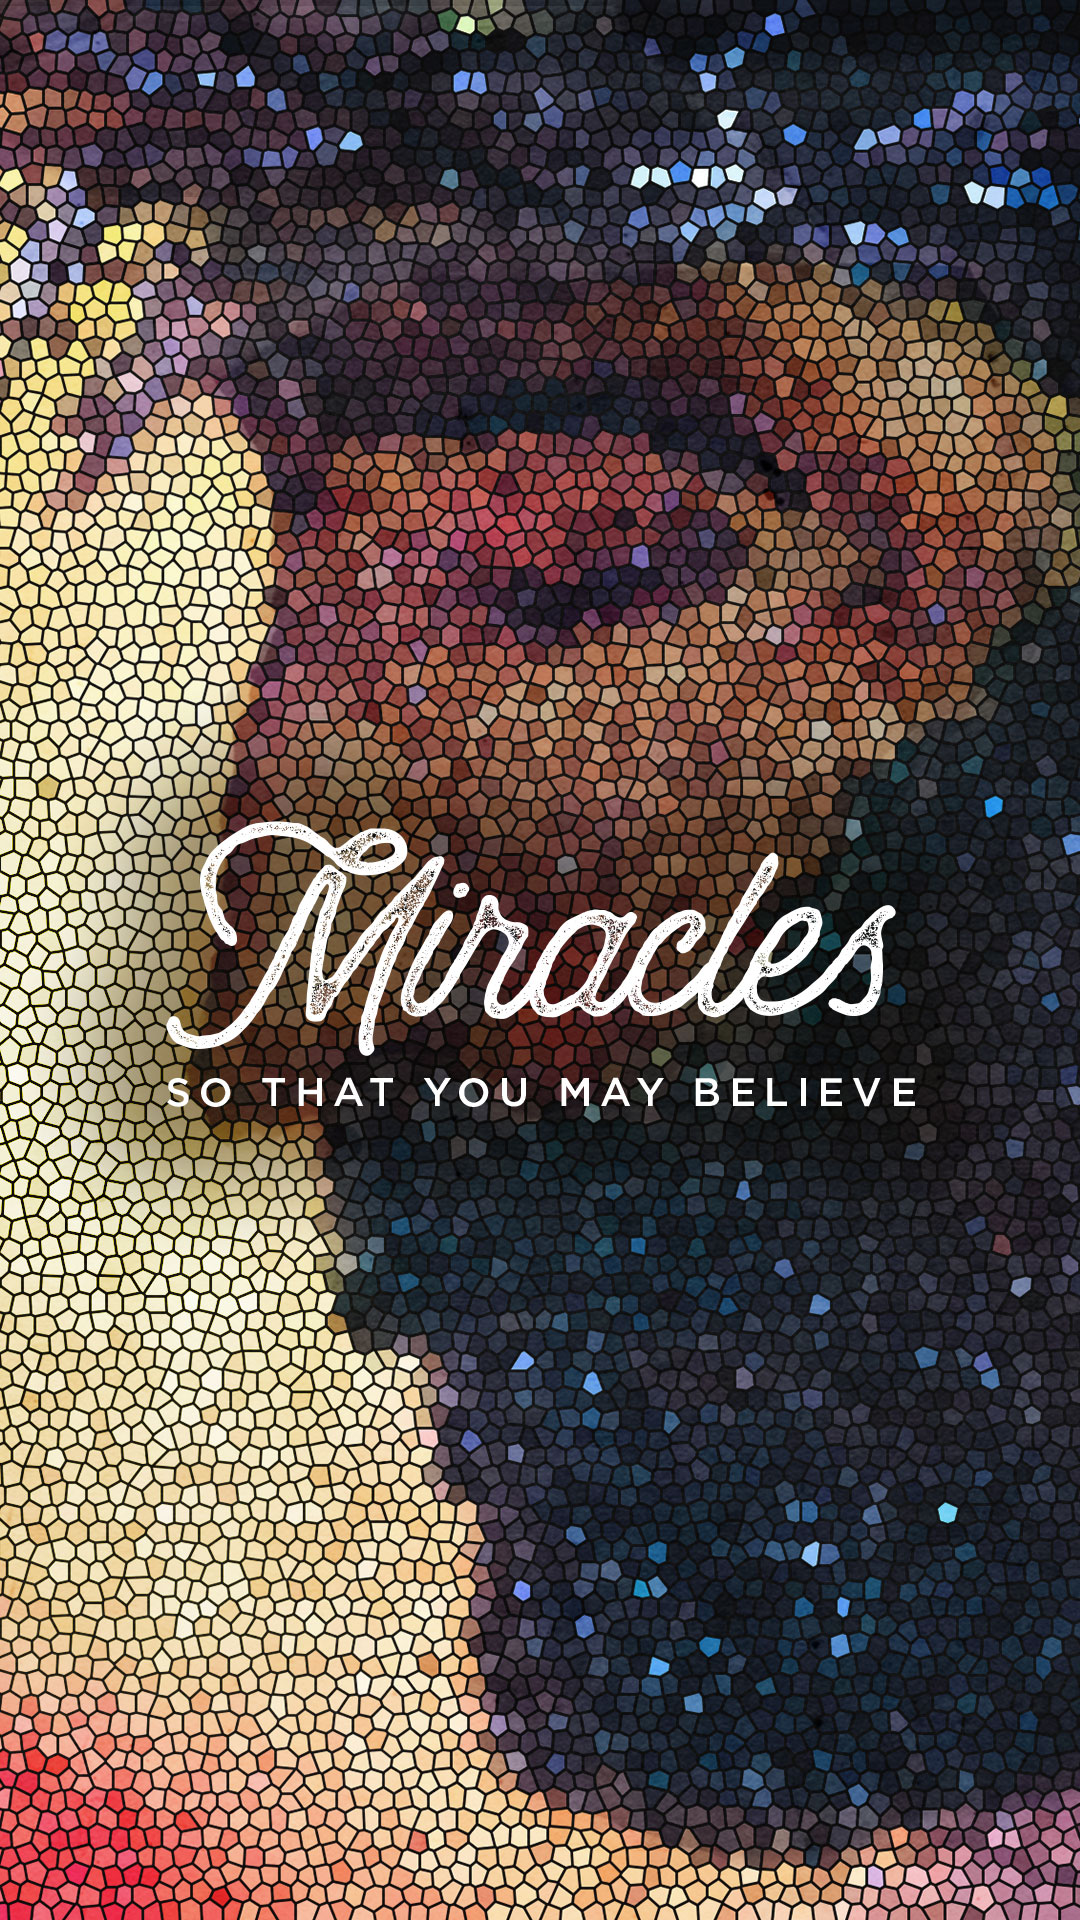 miracles_phone_wallpaper